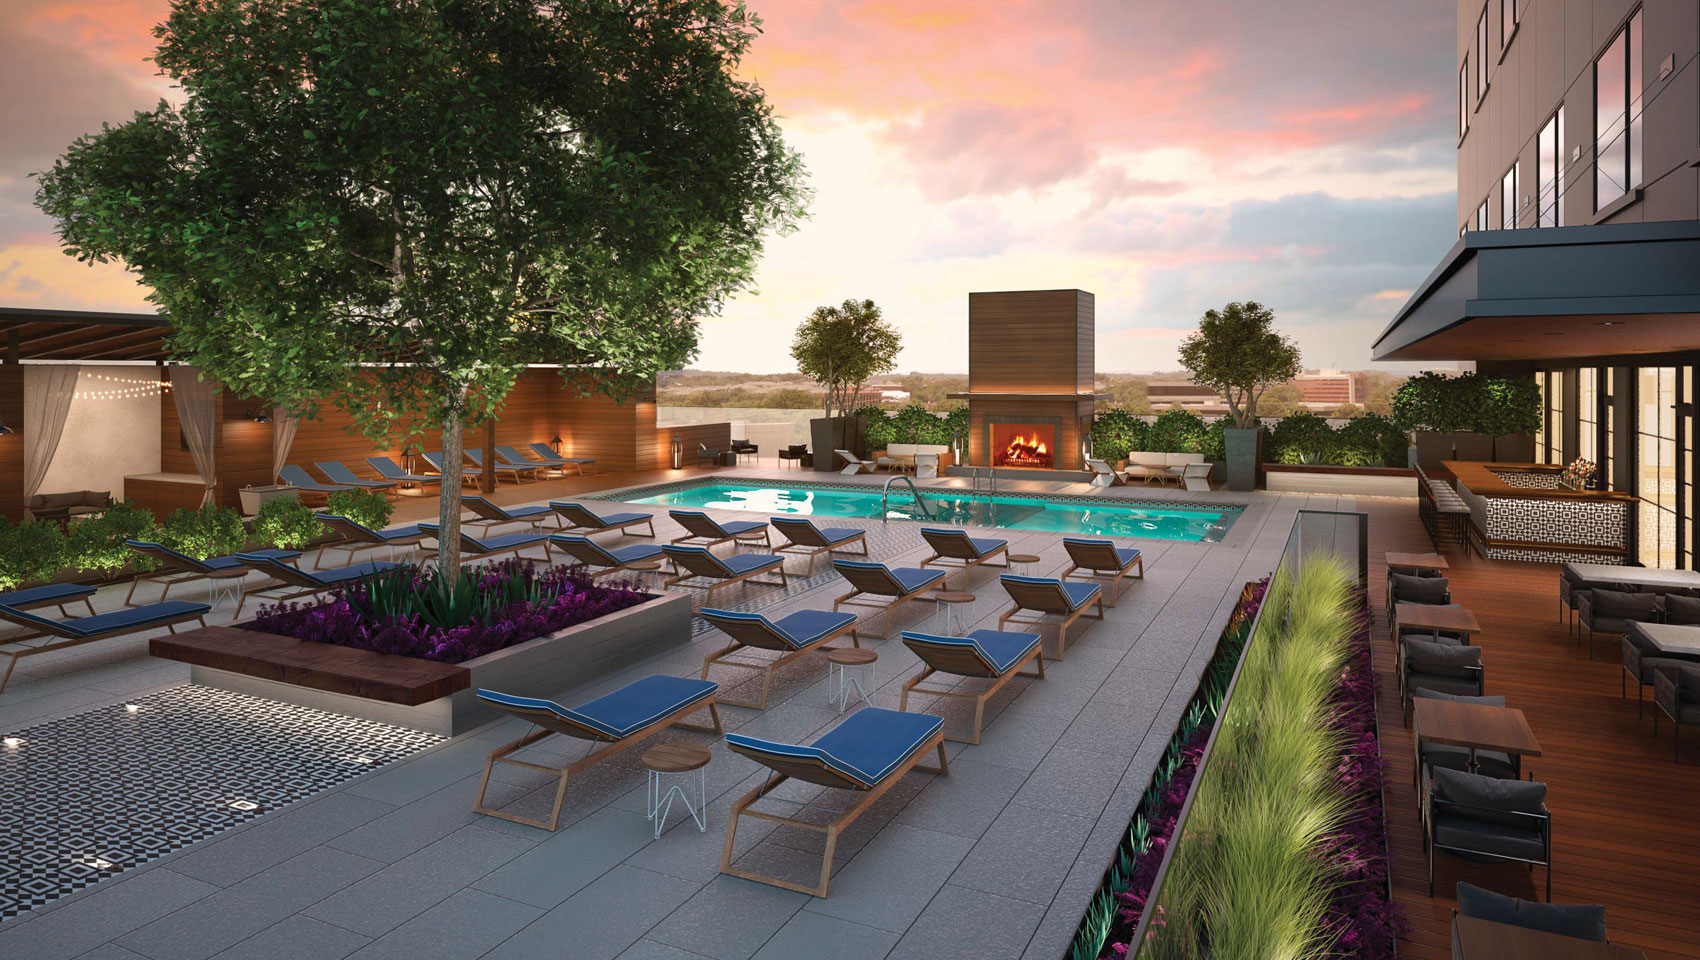 Hotel Van Zandt for pool side events